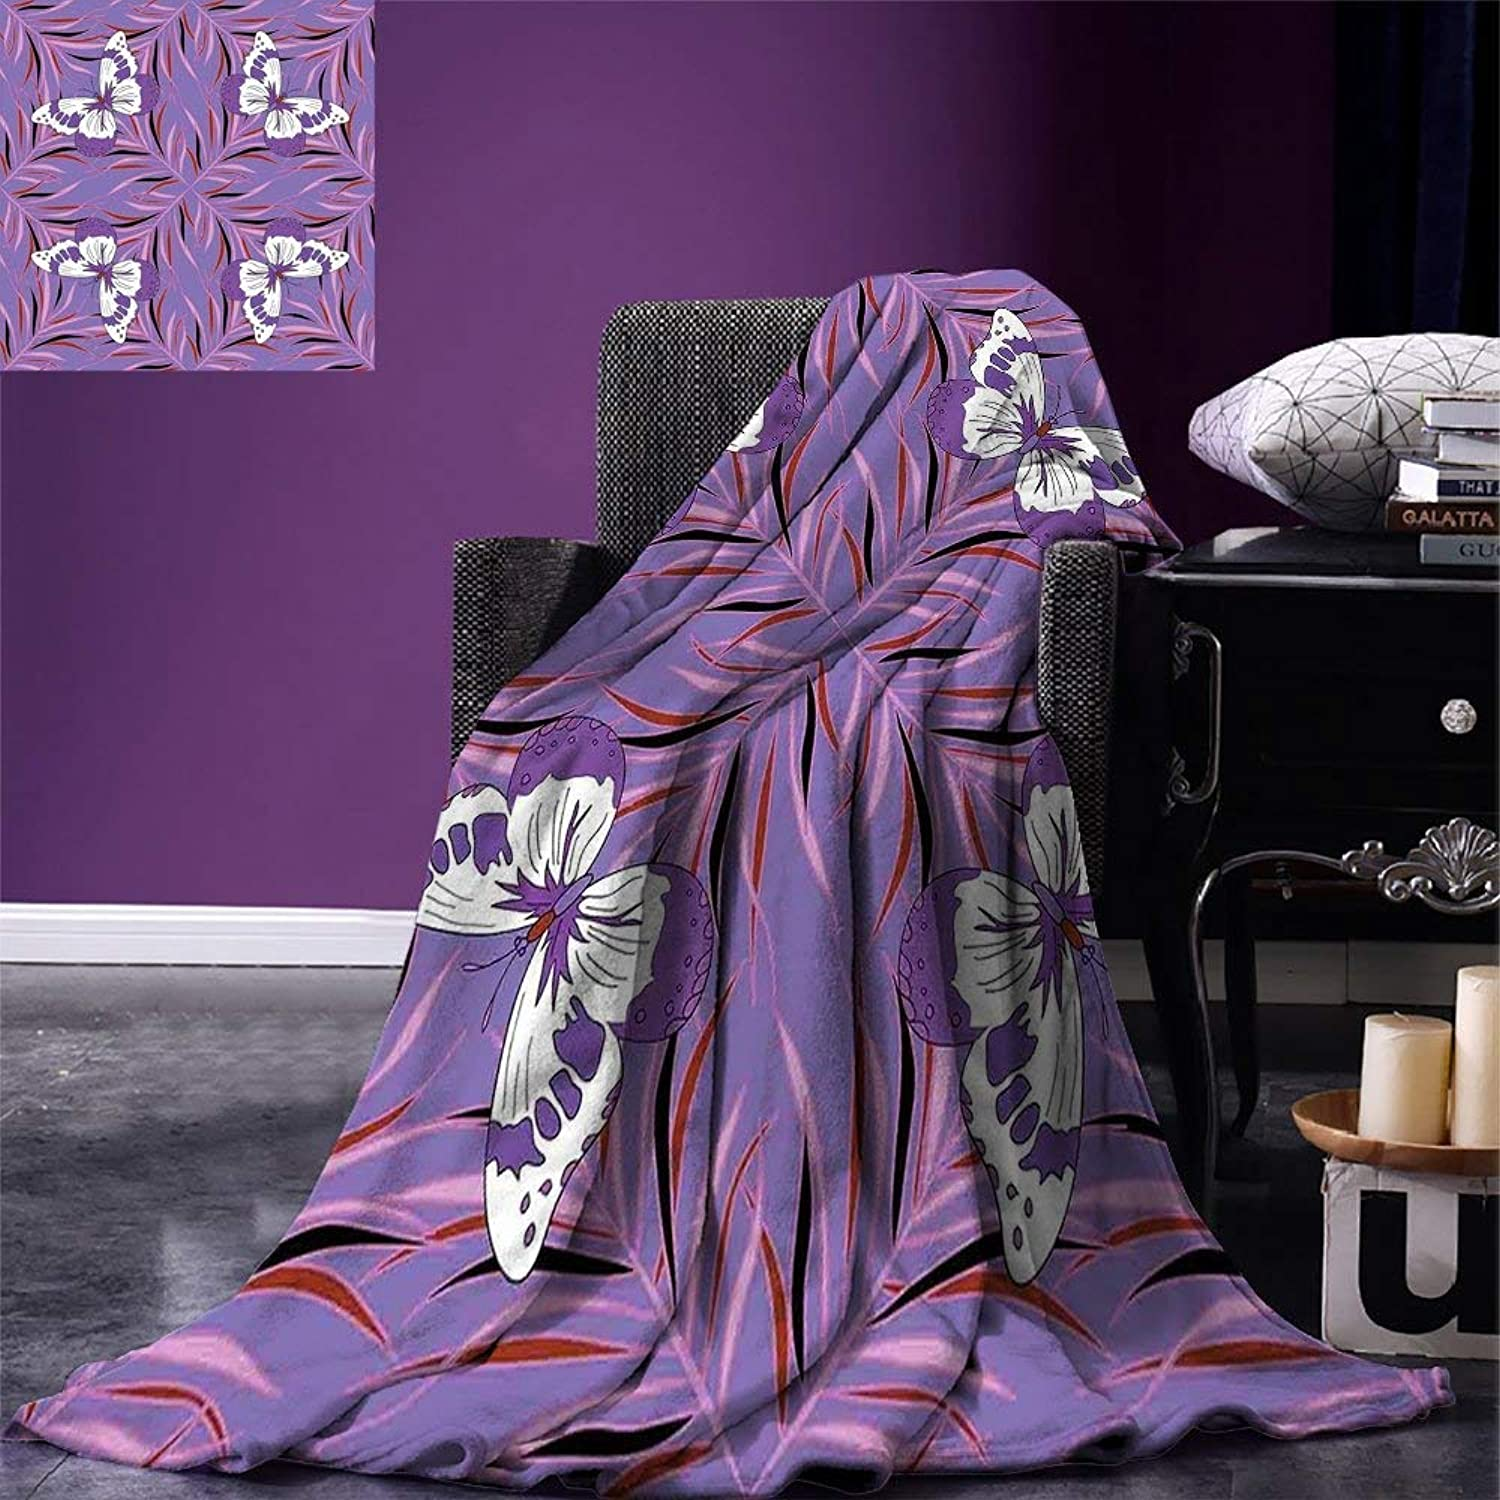 VANKINE Mauve Throw Blanket Exquisite Butterfly Icons Spiritual Animal with Wings Fairy Illustration Velvet Plush Throw Blanket Lavender and White